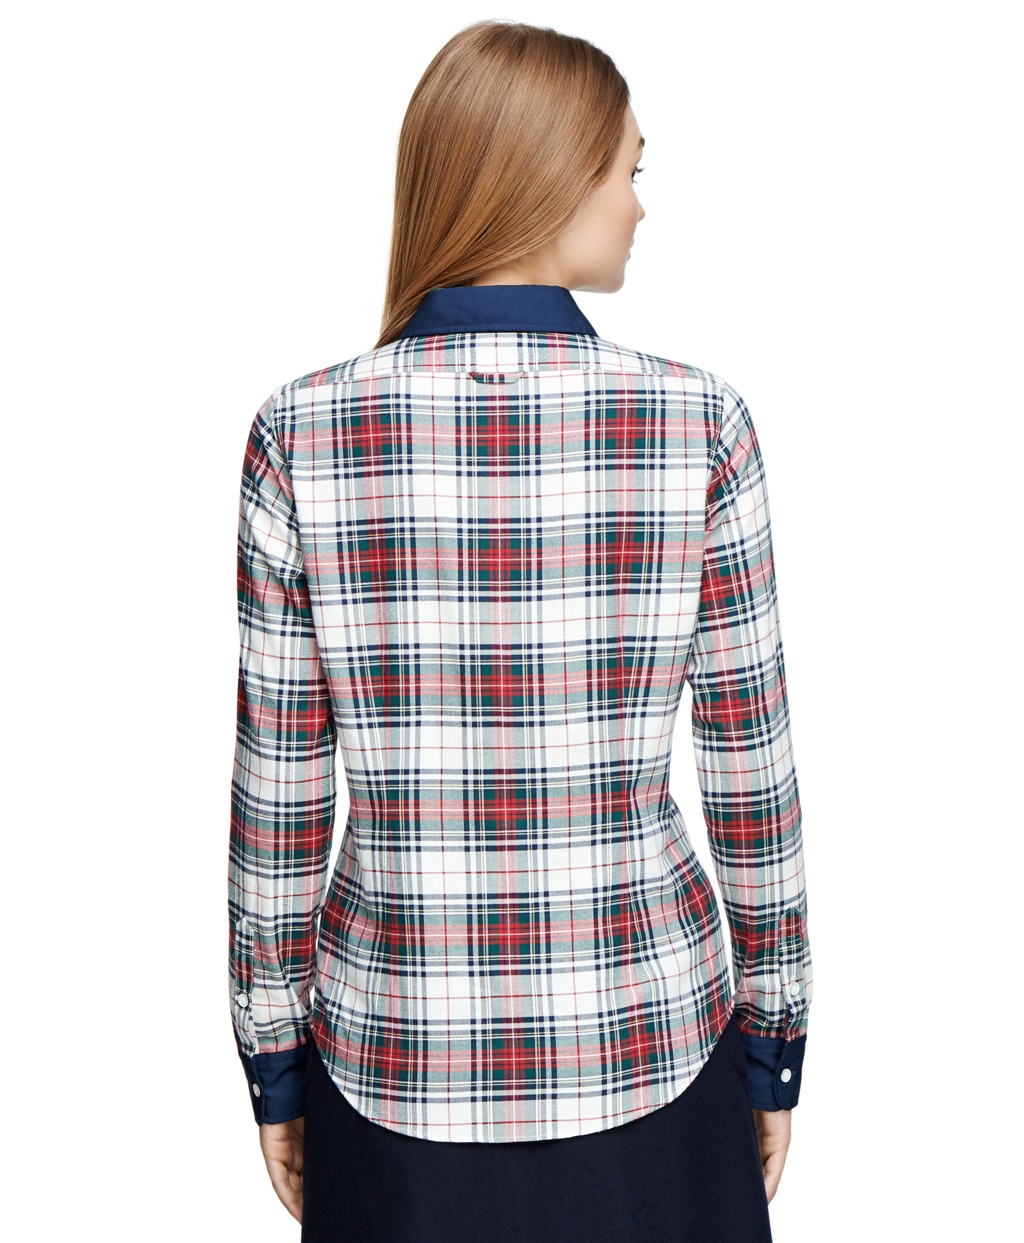 Yarn Dyed Flannel Plaid Blue White Fabric Description: This soft double napped (brushed on both sides) lightweight ( oz per square yard) flannel is perfect for shirts, loungewear and more! Features a yarn dyed plaid of blue and white.3/5(2).